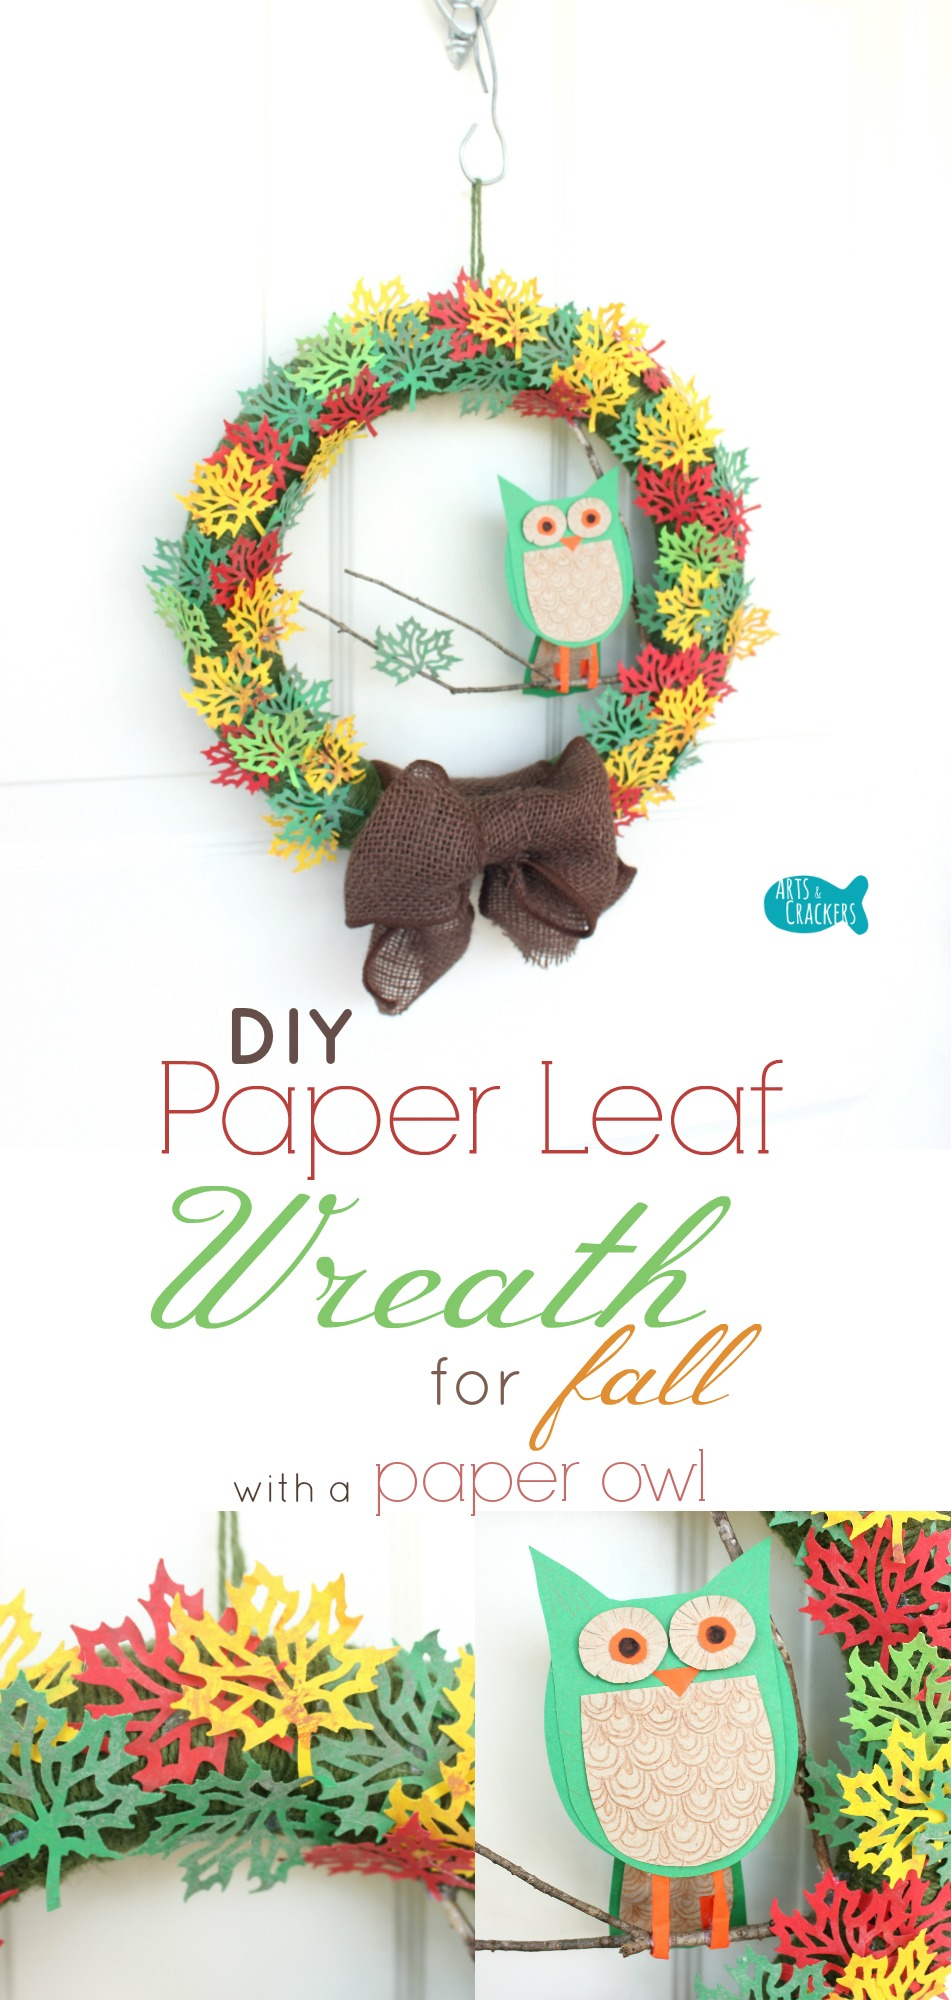 Paper leaf wreath with paper owl fall paper craft tutorial this paper leaf wreath is perfect for fall learn how to create this autumn paper jeuxipadfo Image collections